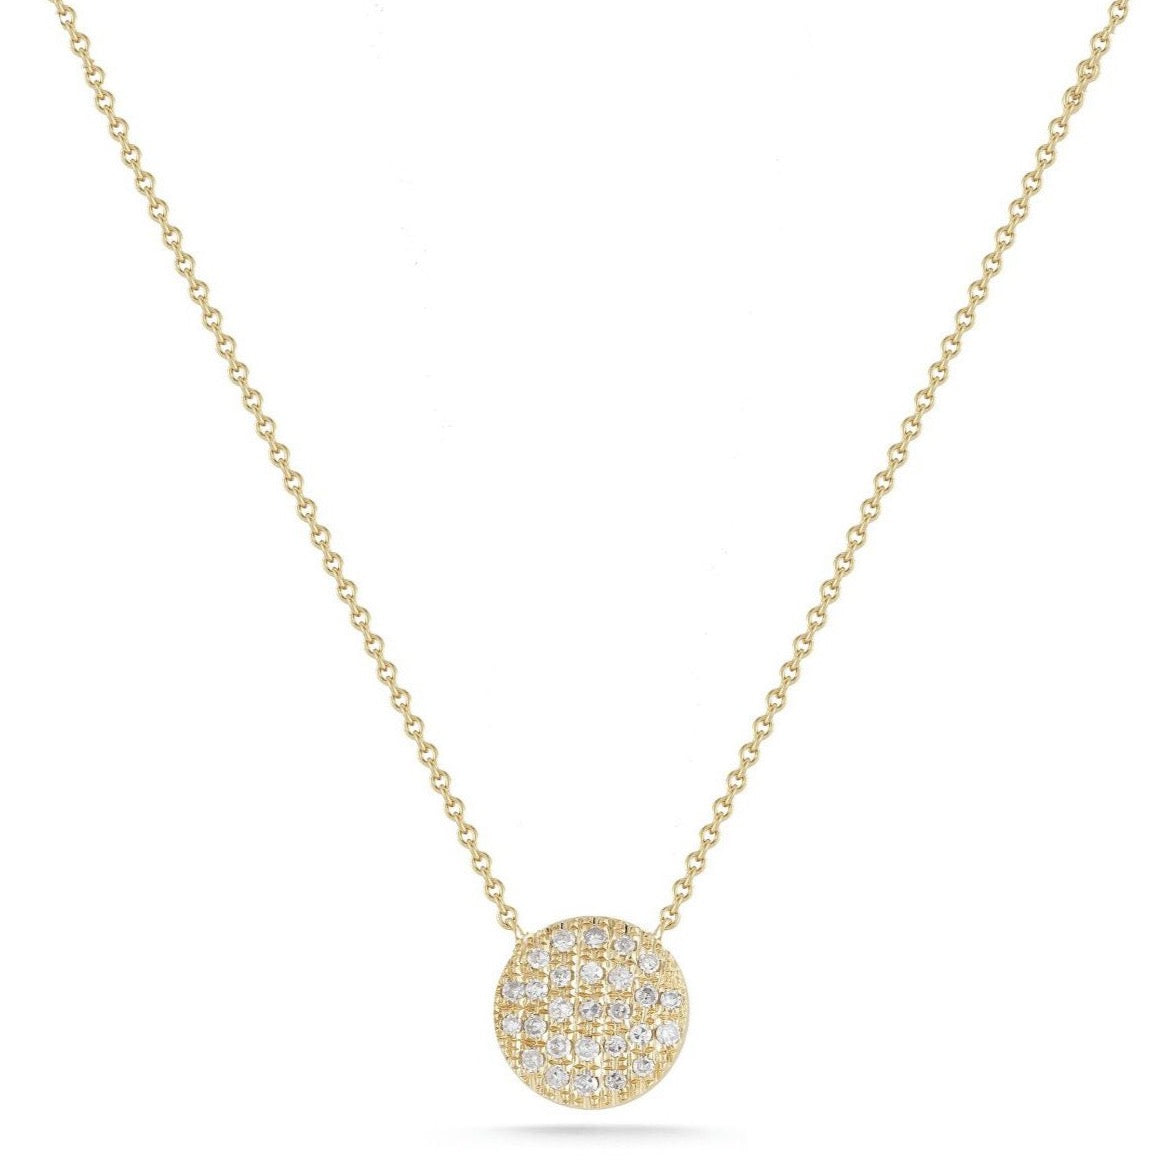 DANA-REBECCA-LAUREN-JOY-ROUND-PENDANT-NECKLACE-DIAMONDS-YELLOW-GOLD-N253